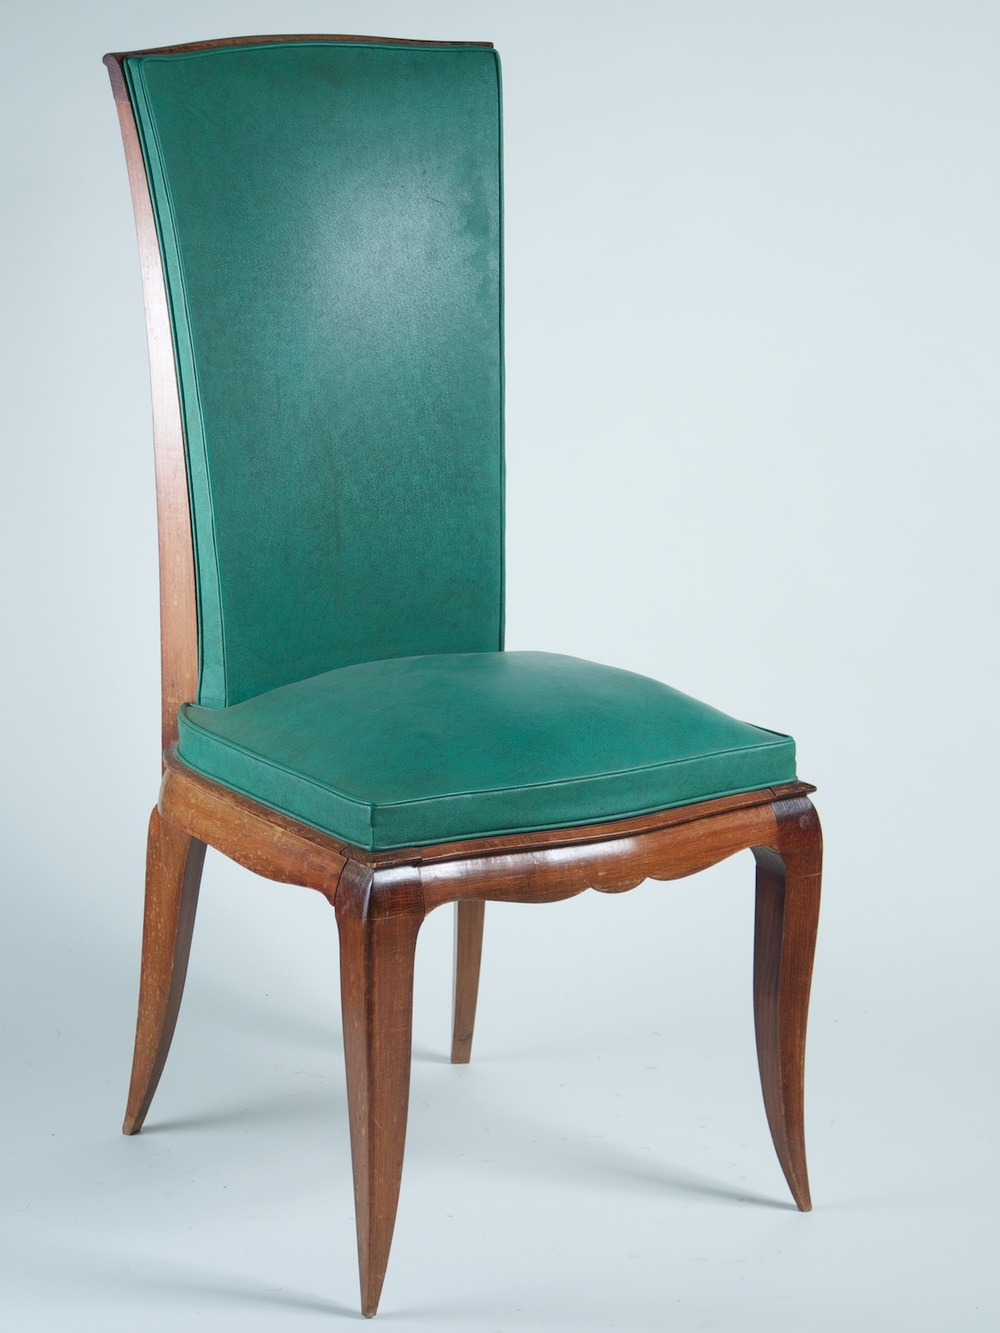 Rene Prou Set Of 6 Dining Chairs In Beech (#1174)